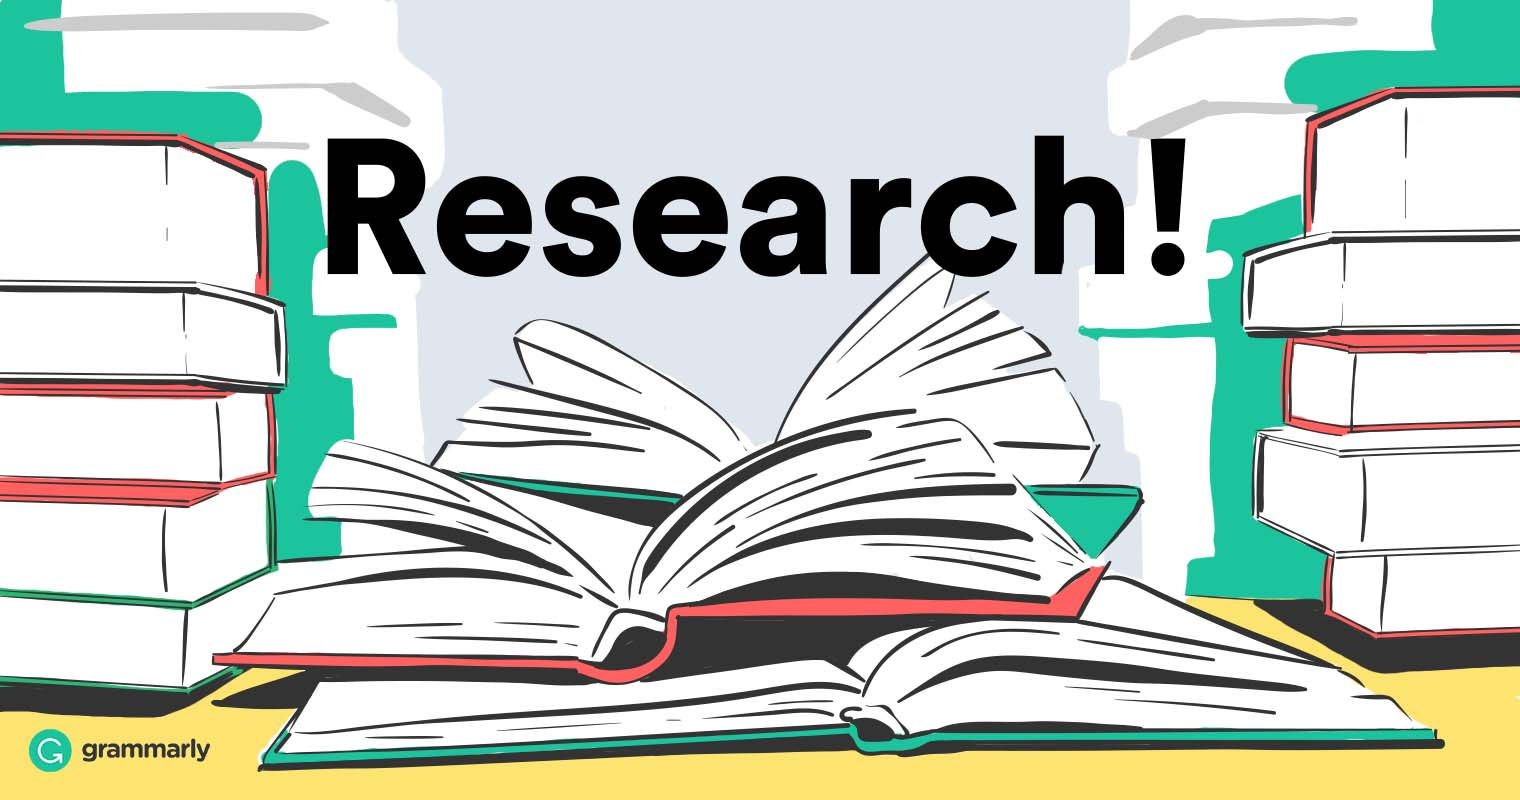 005 Research Paper Should Breathtaking A Contain What The Introduction Of An Abstract Section Main Idea Full